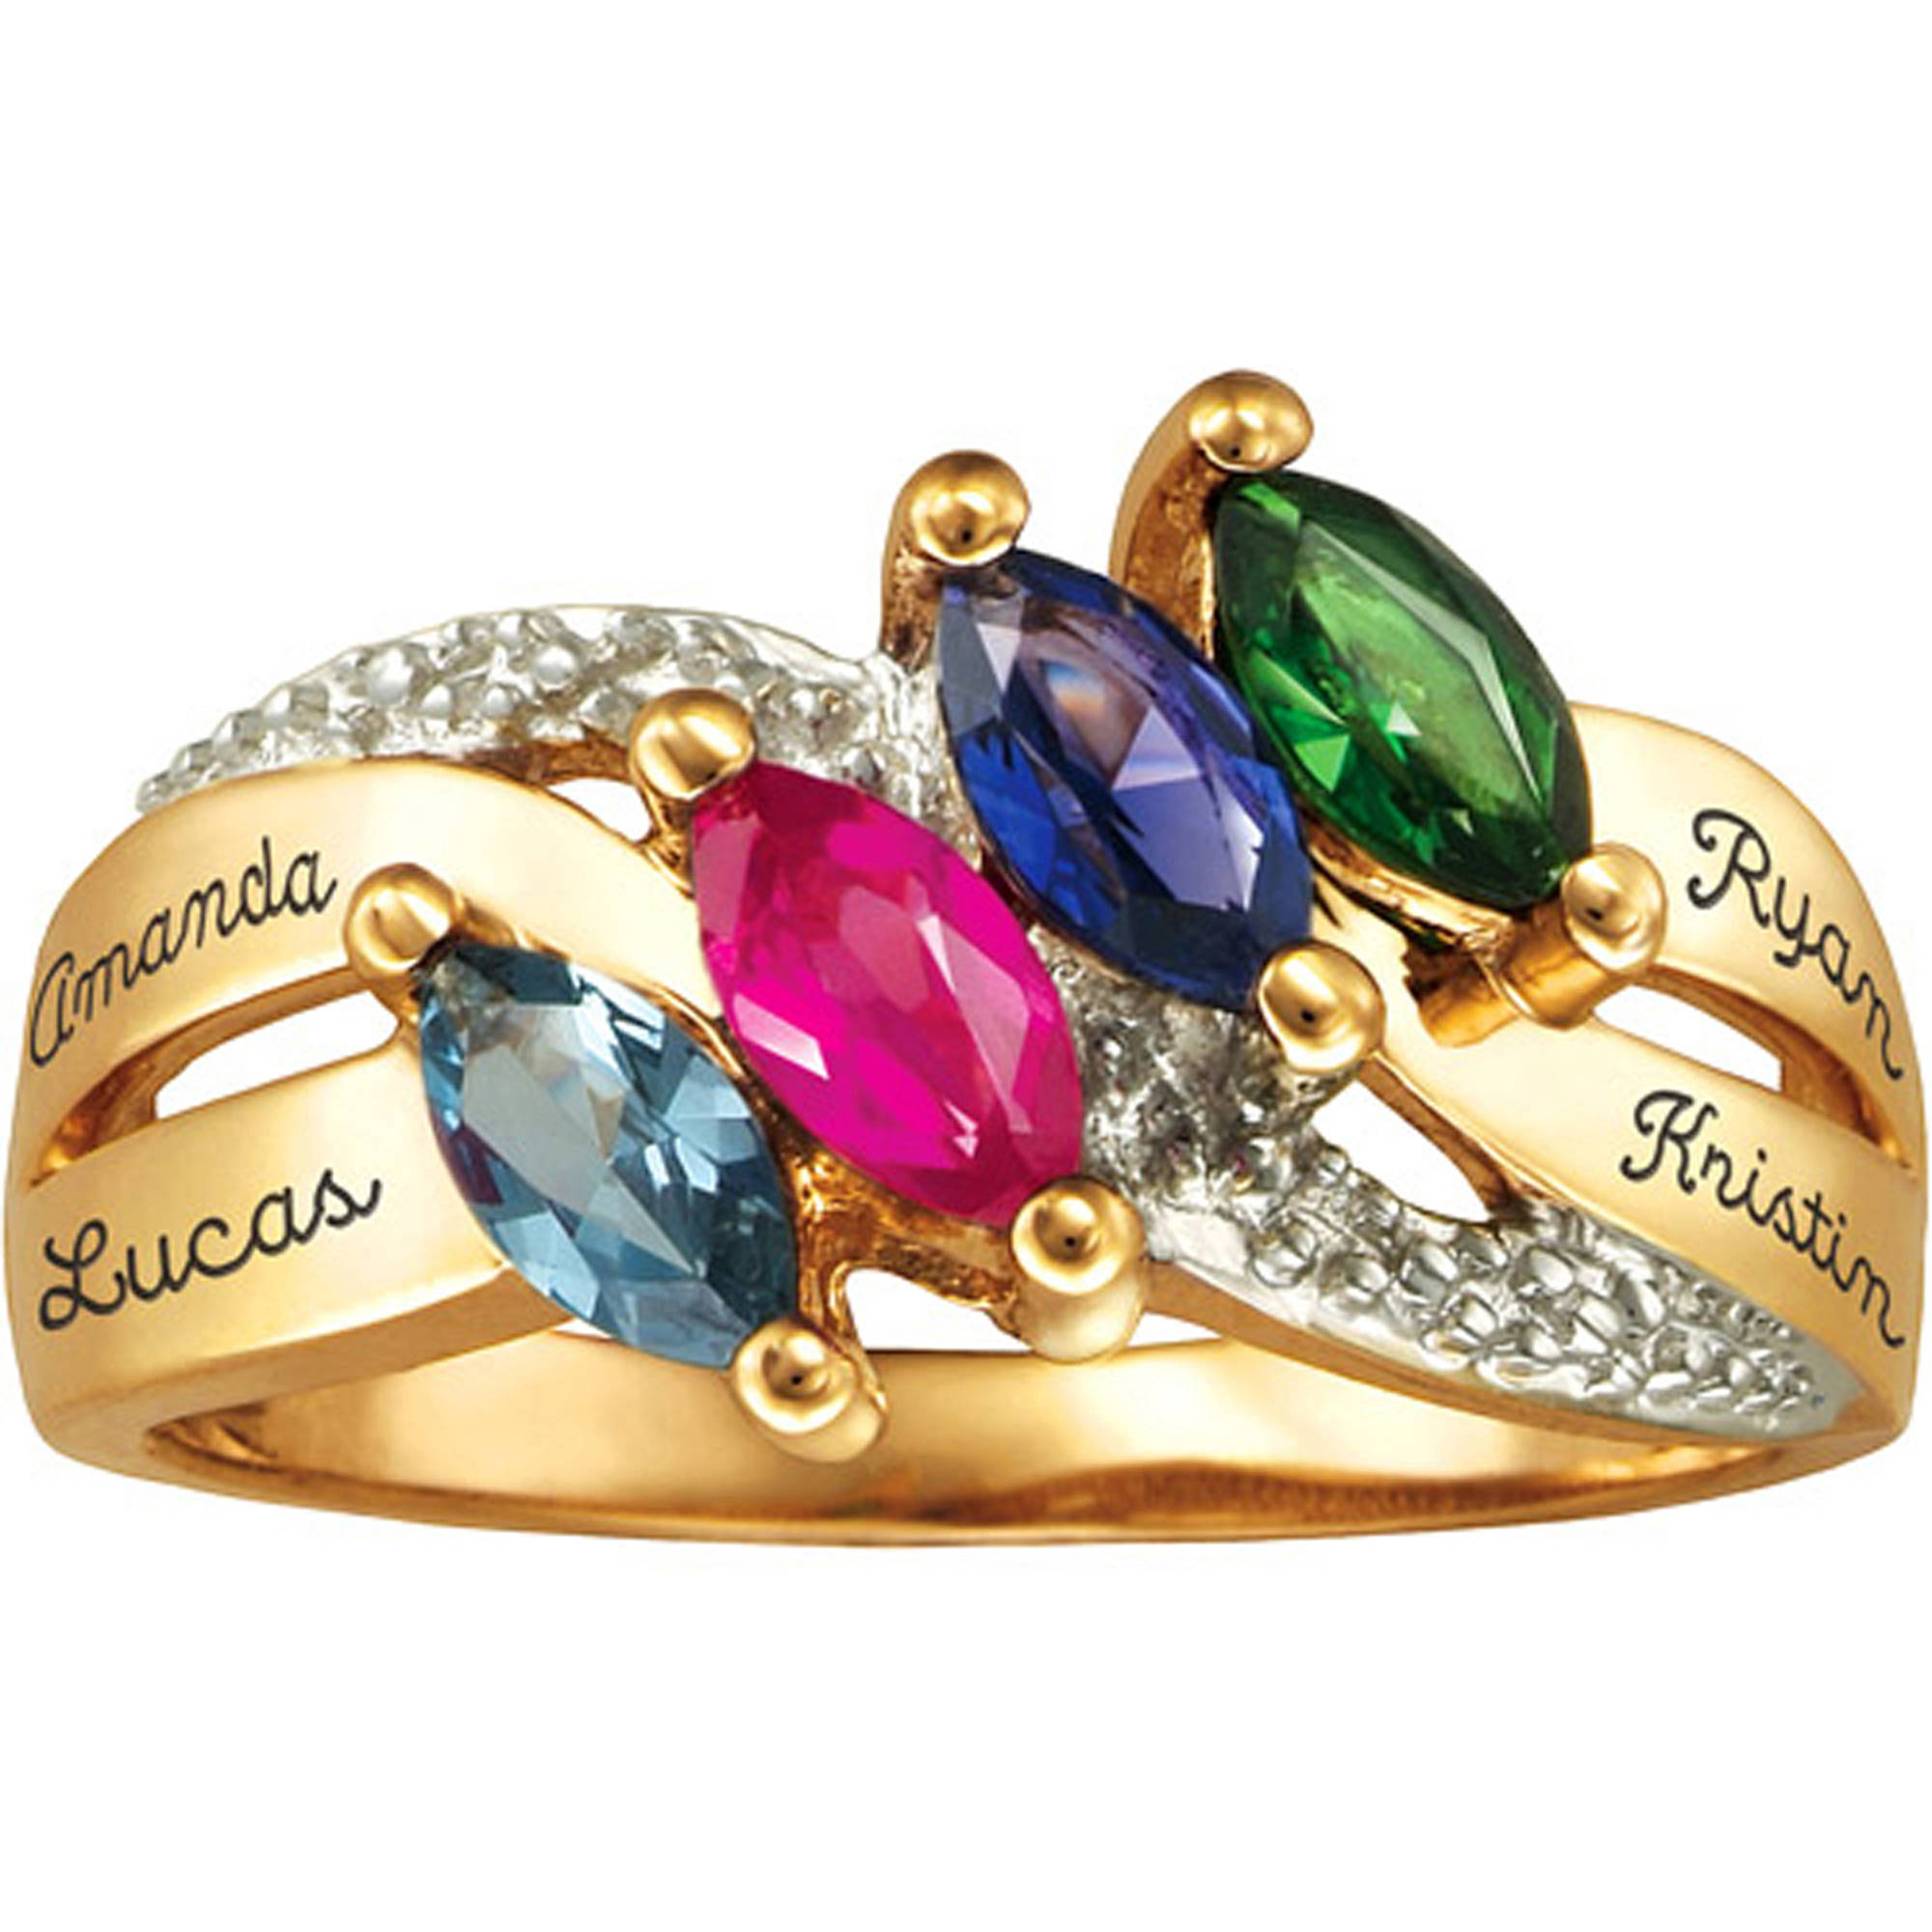 Keepsake Personalized Lustre Mother's Birthstone Ring